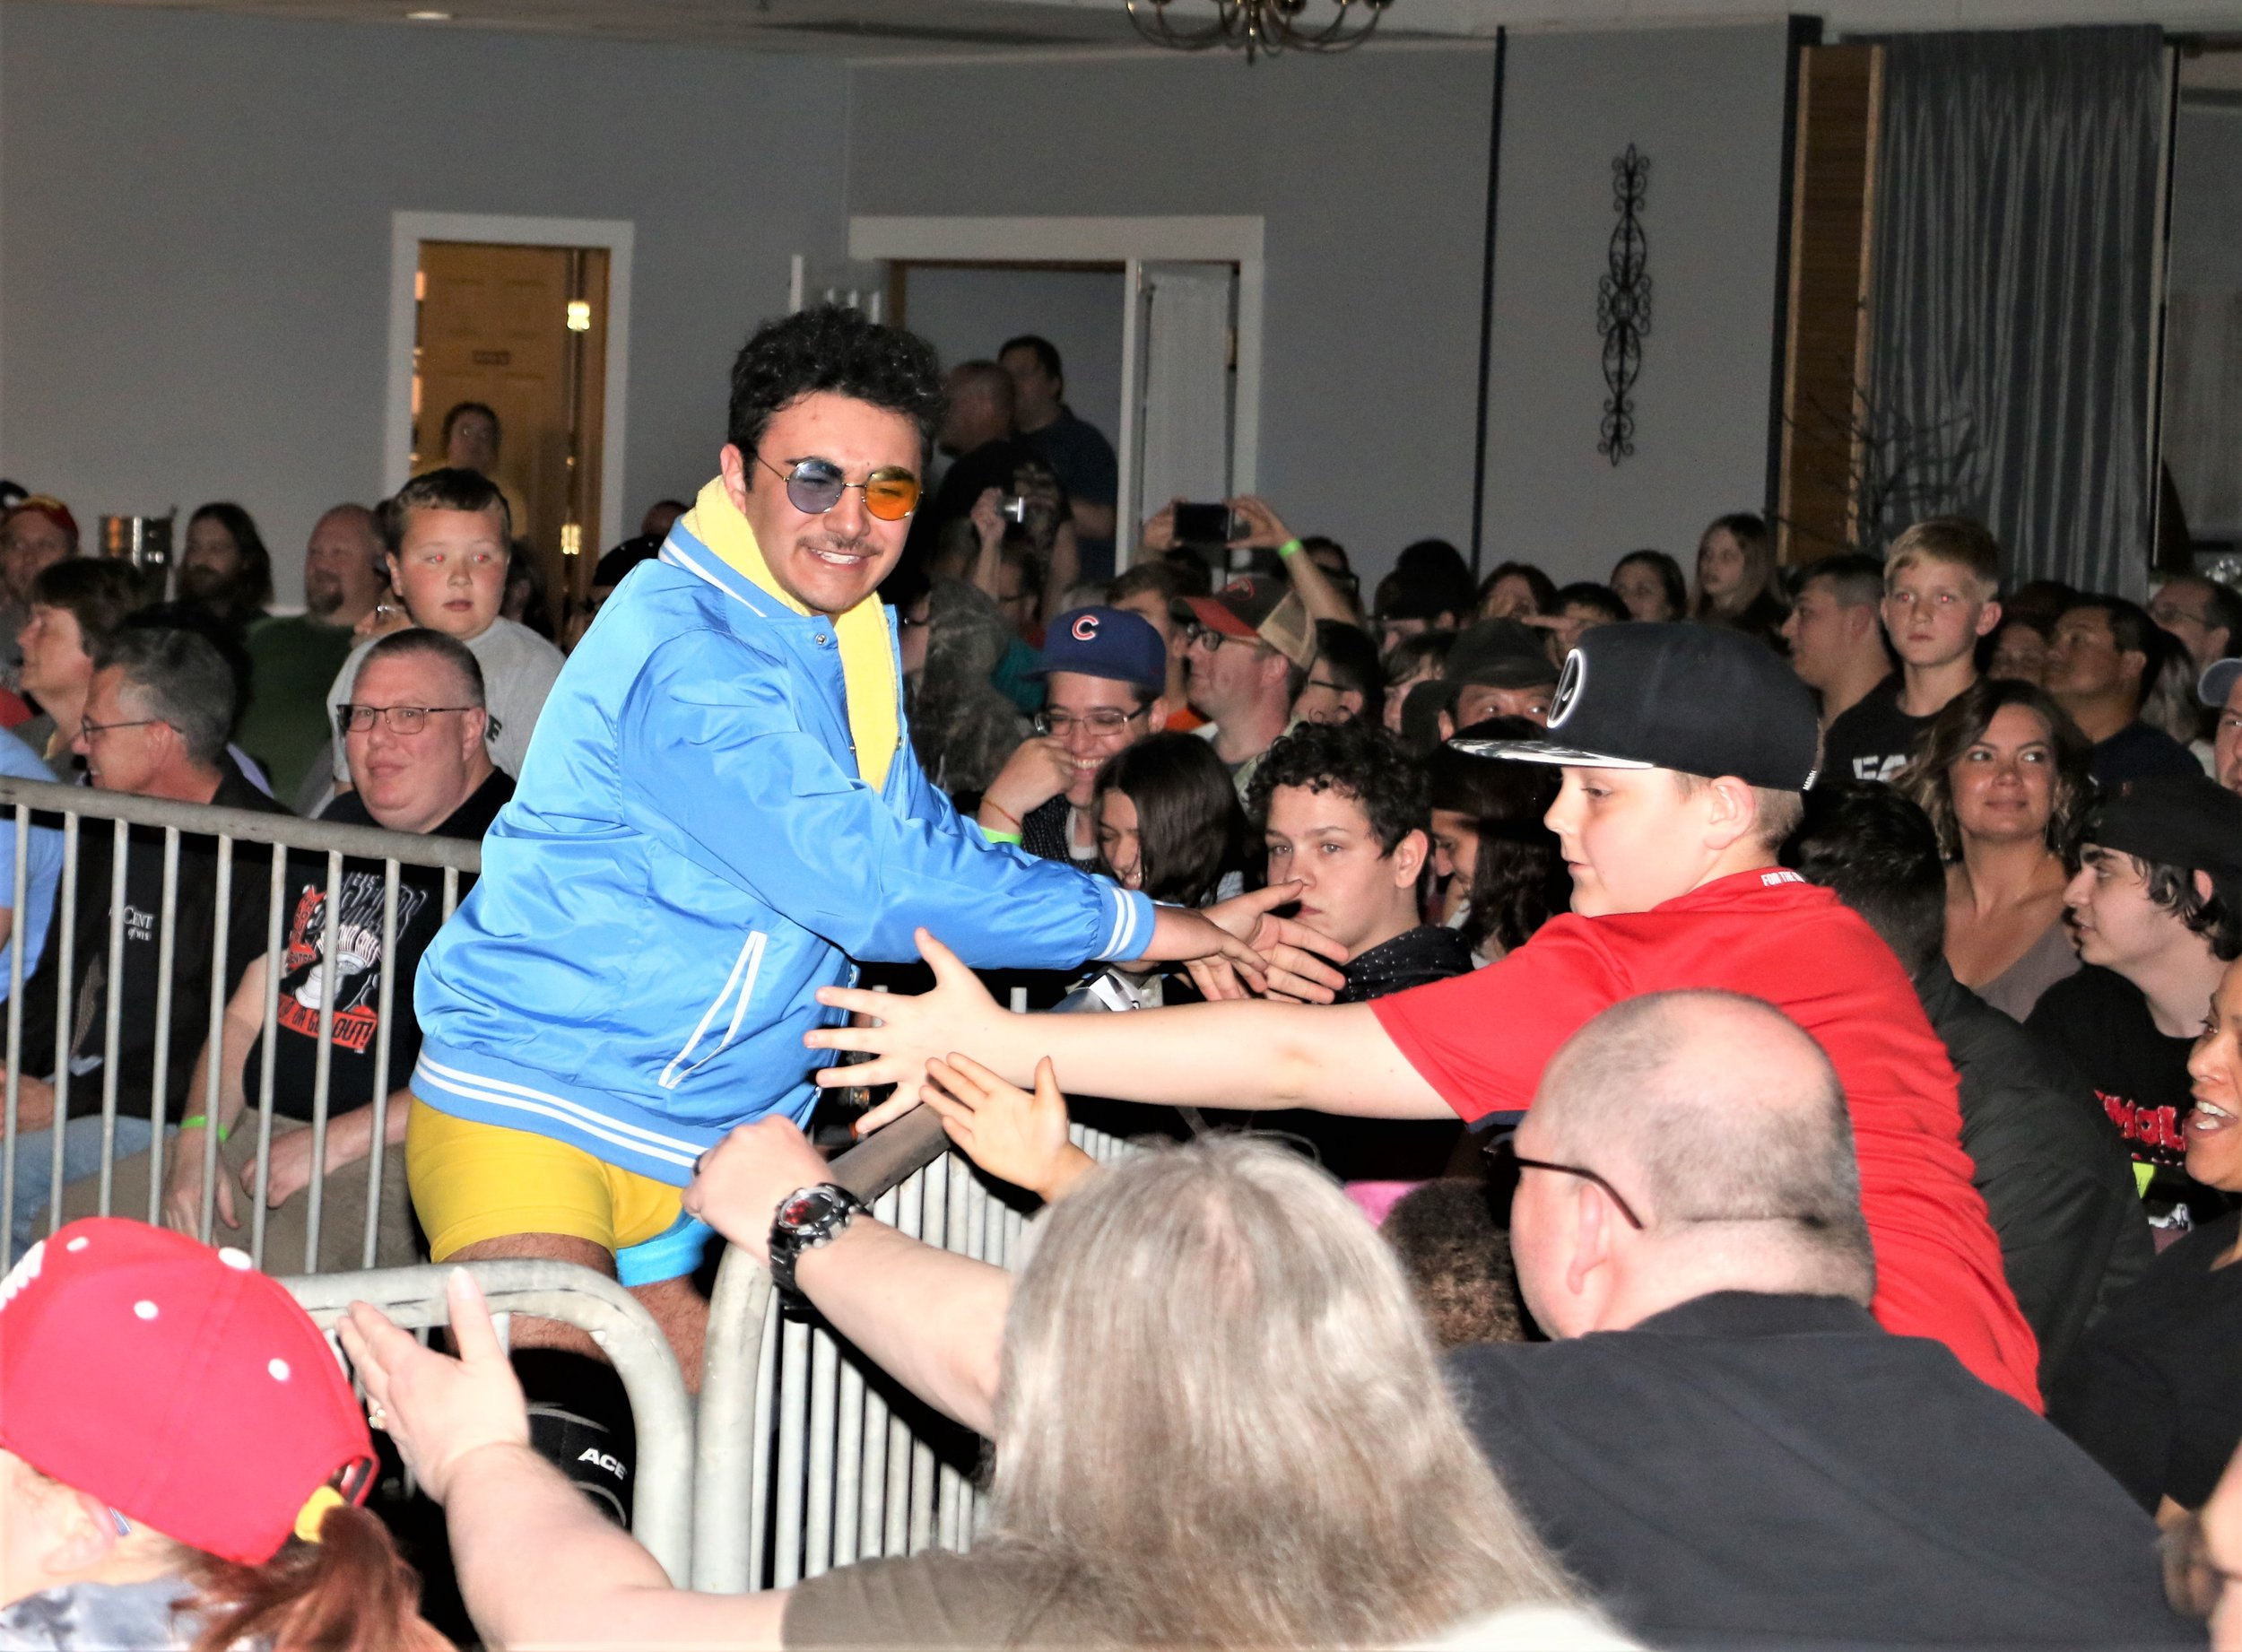 Kal Herro greets fans around the ring.